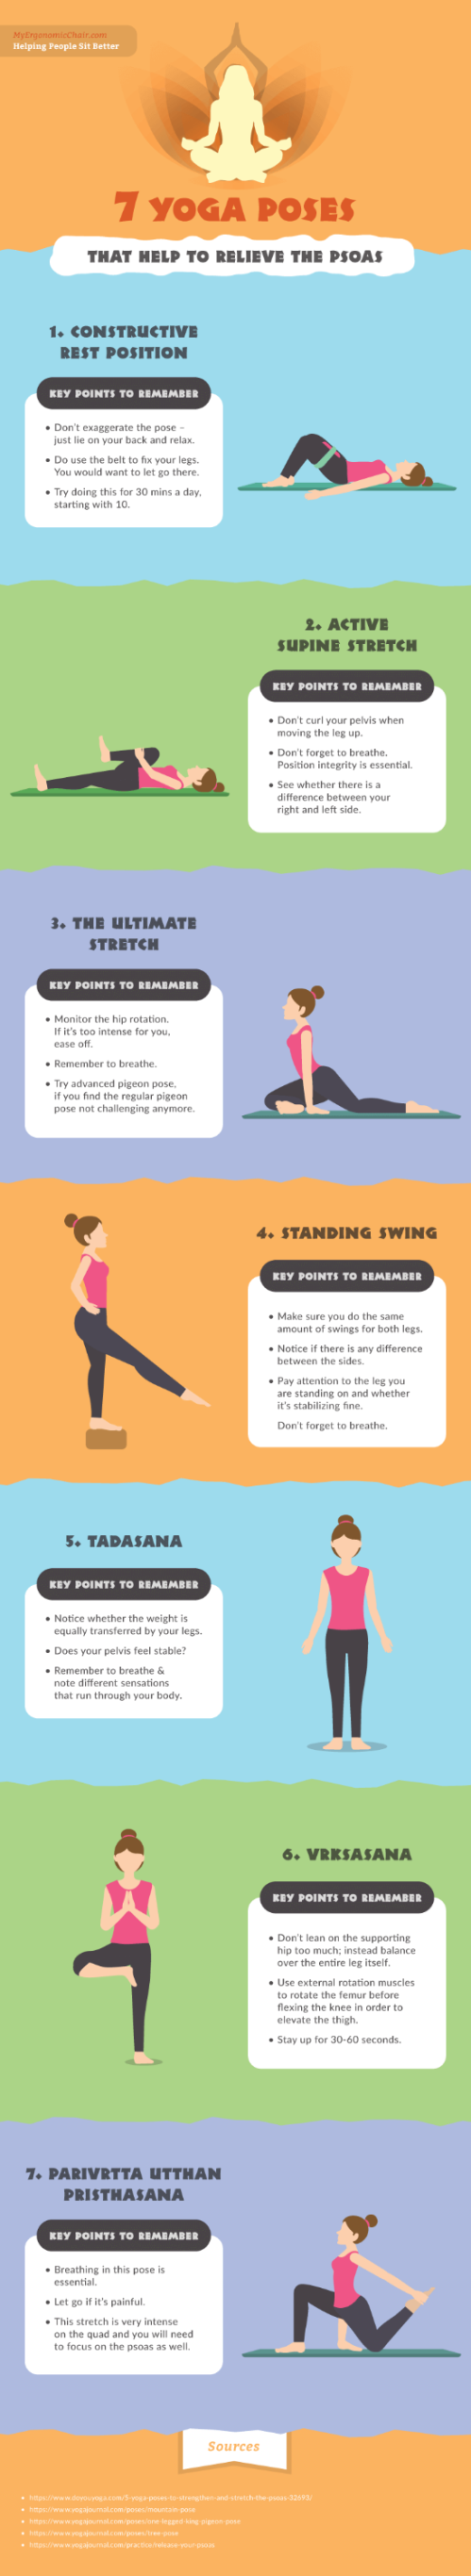 The 7 yoga poses that can reduse or even eliminate low back pain